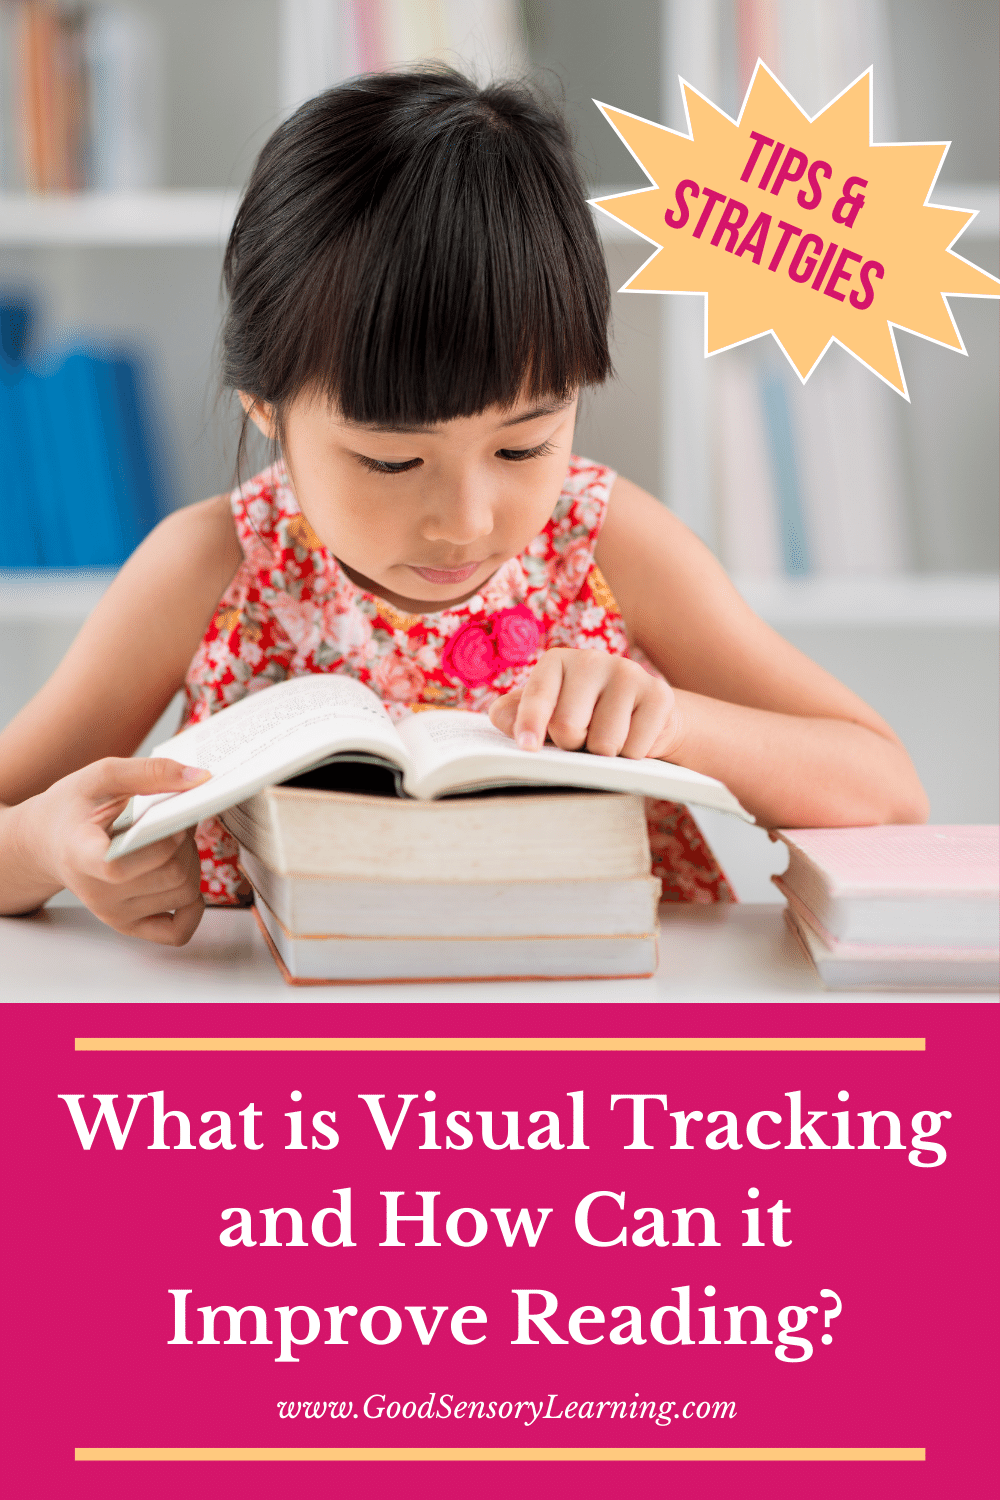 How to improve reading with improved visual tracking